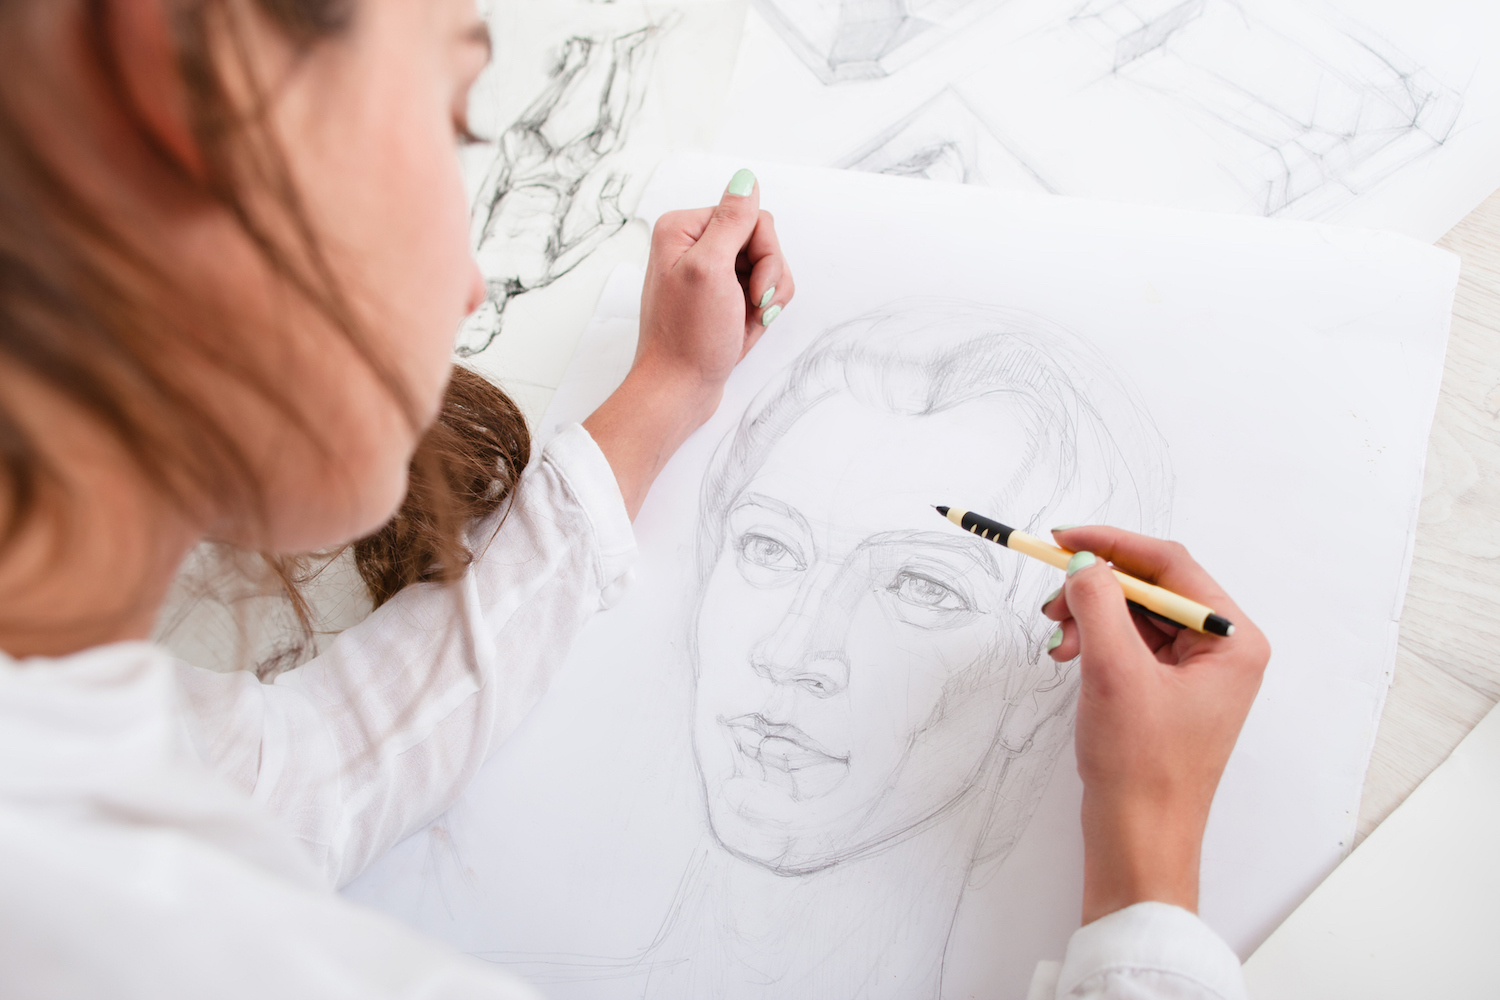 New drawing habits and 10 basics of drawing for beginner artists | Artist drawing a portrait, photo courtesy of Getty Images | Article brought to you by Artists Network